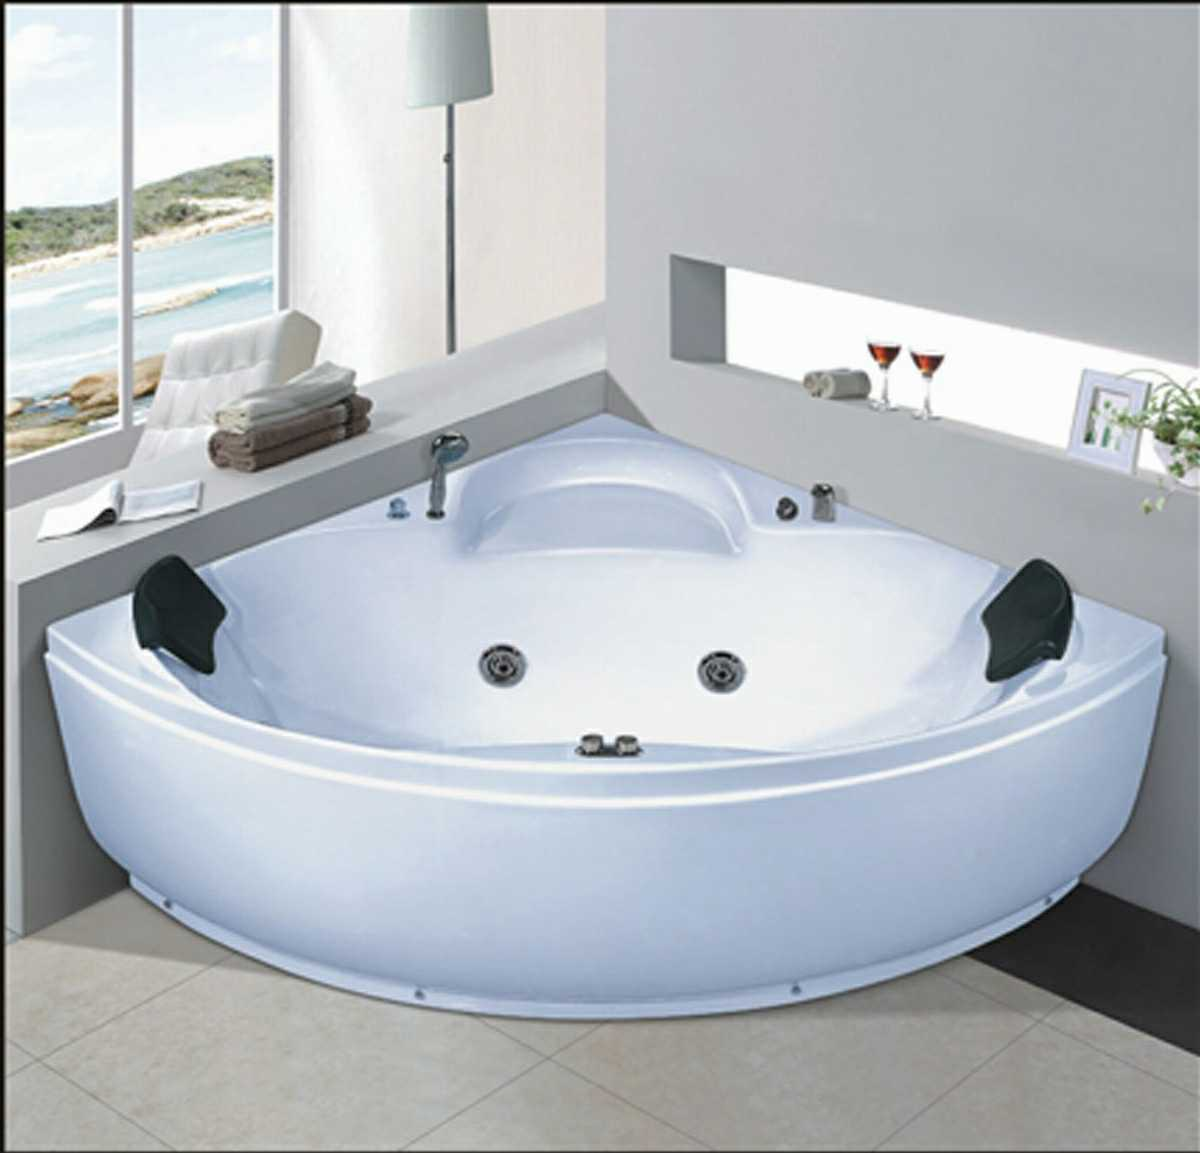 China 1300mm Corner Jacuzzi with Ce and RoHS (AT-8309) - China SPA ...